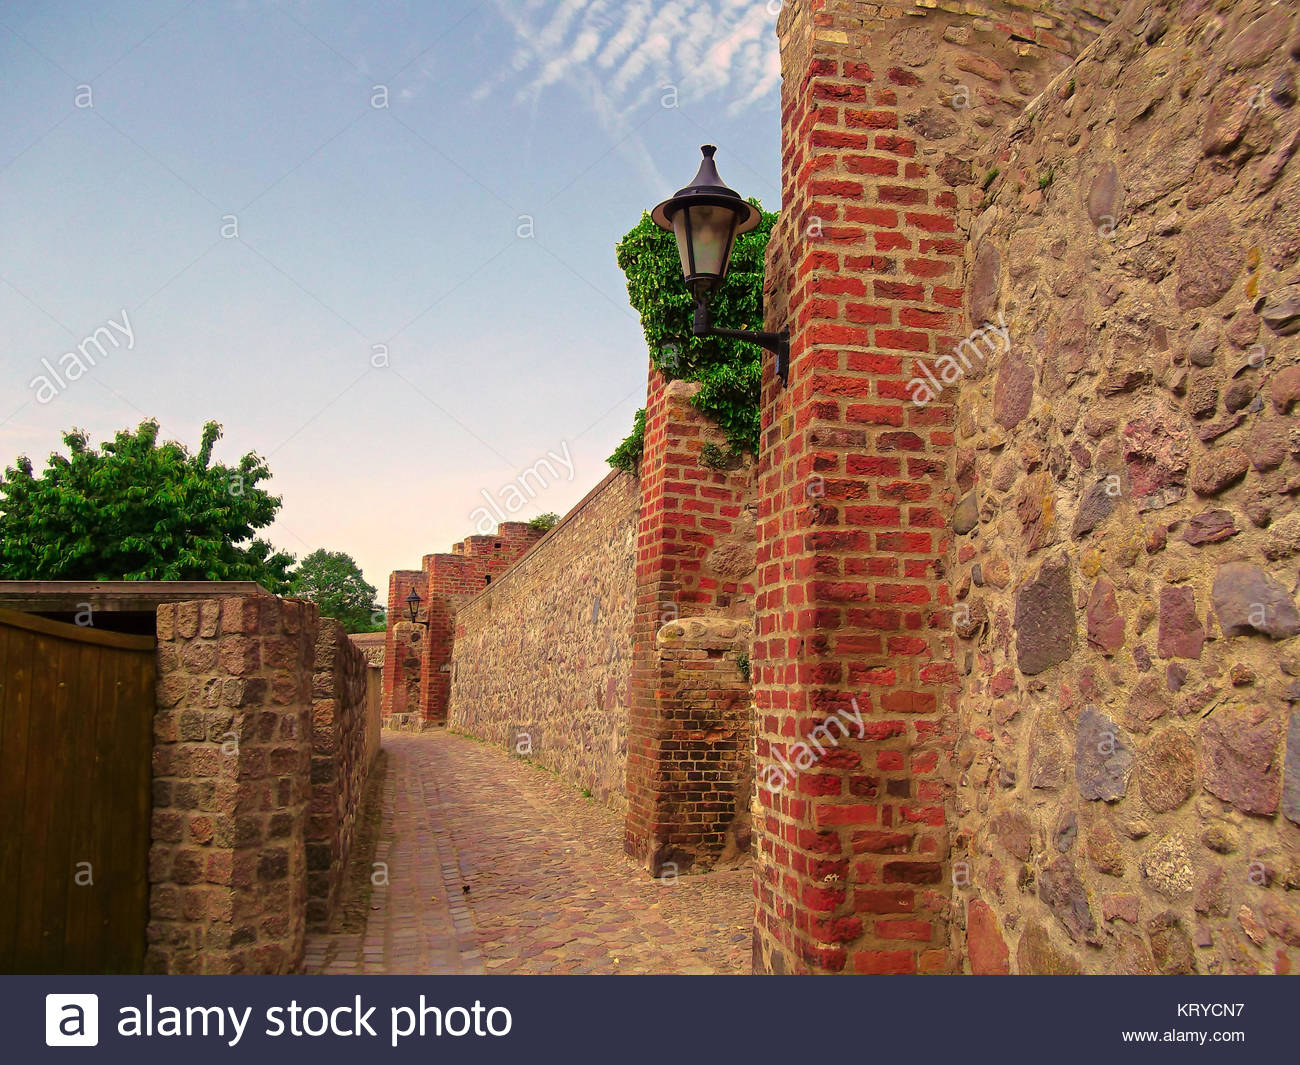 the fortress of templin - Stock Image